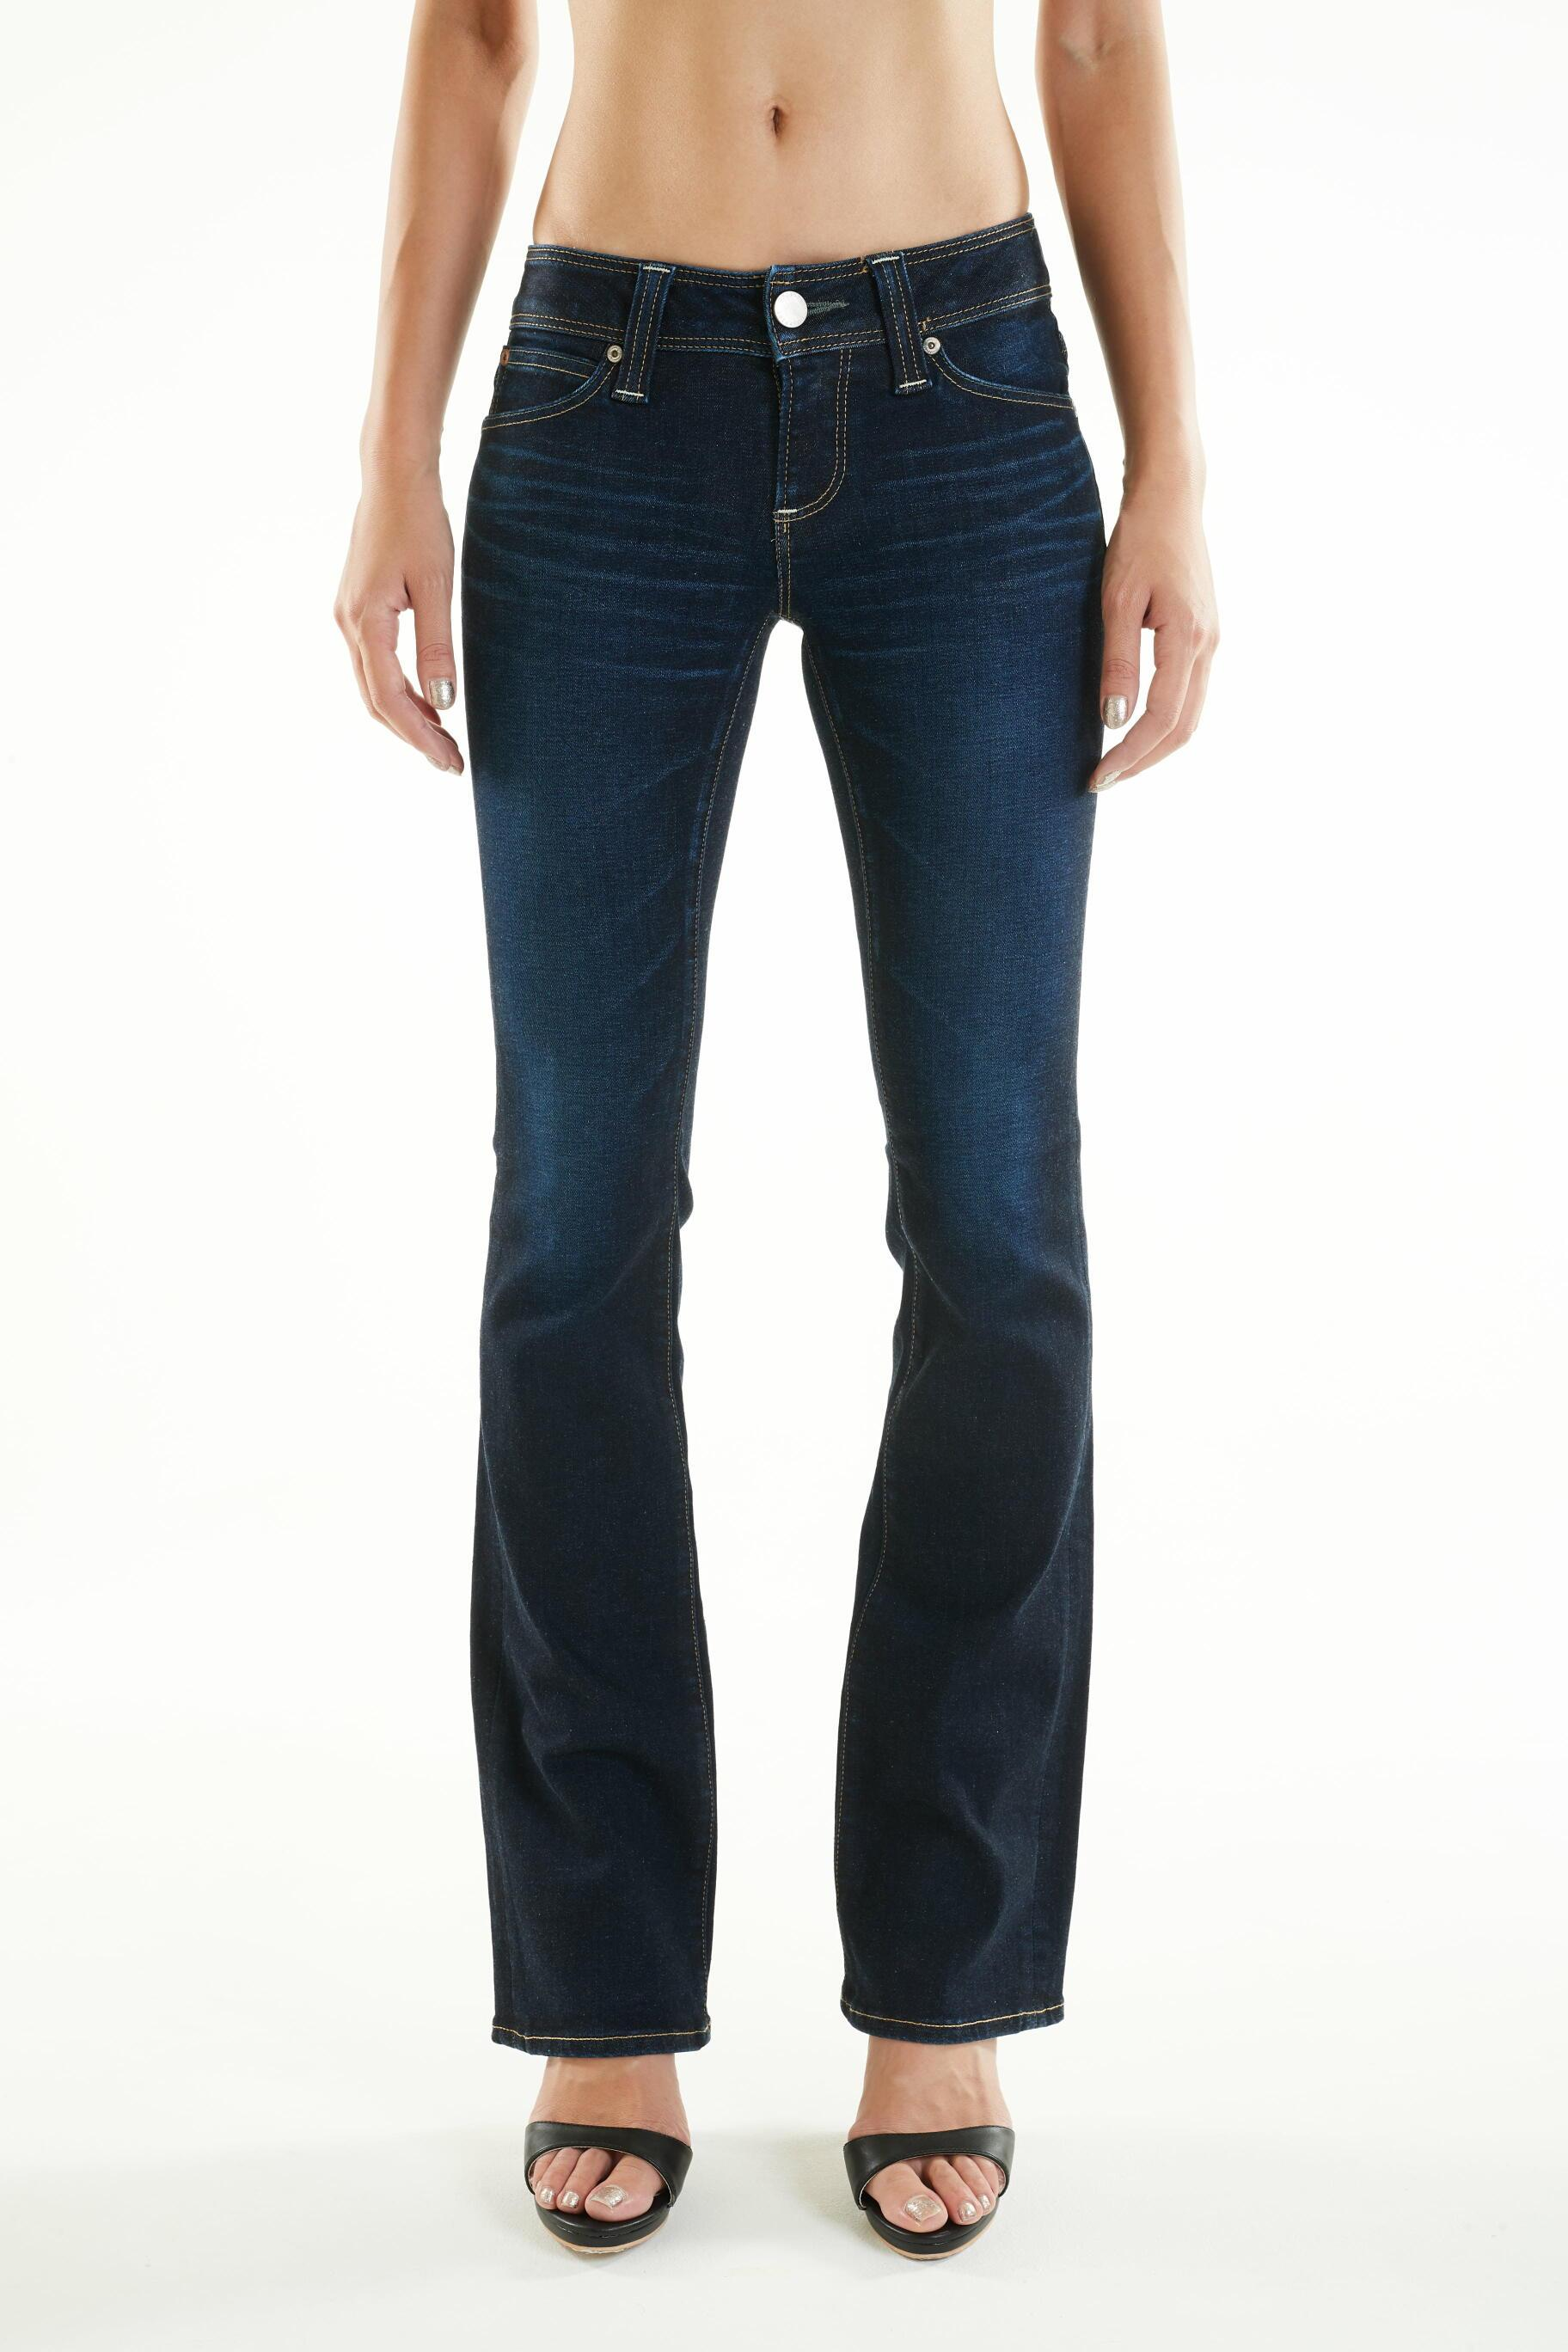 Performance Skinny Flare SD